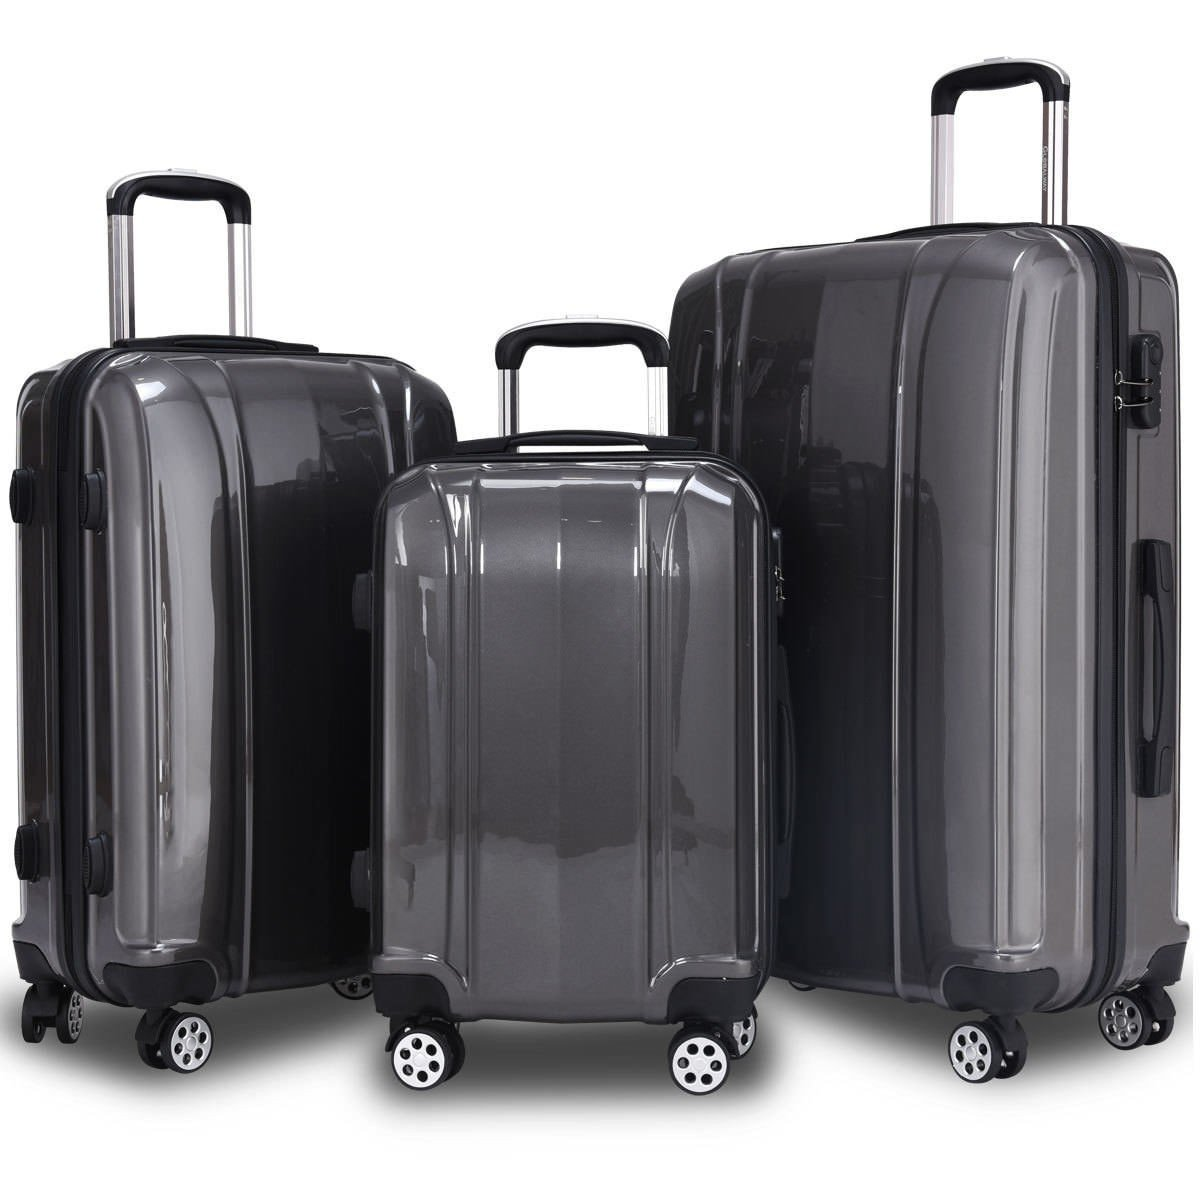 SPECIAL GIFT 3 pcs 20 24 28 ABS+PC Luggage Travel Set Gray Only by eight24hours